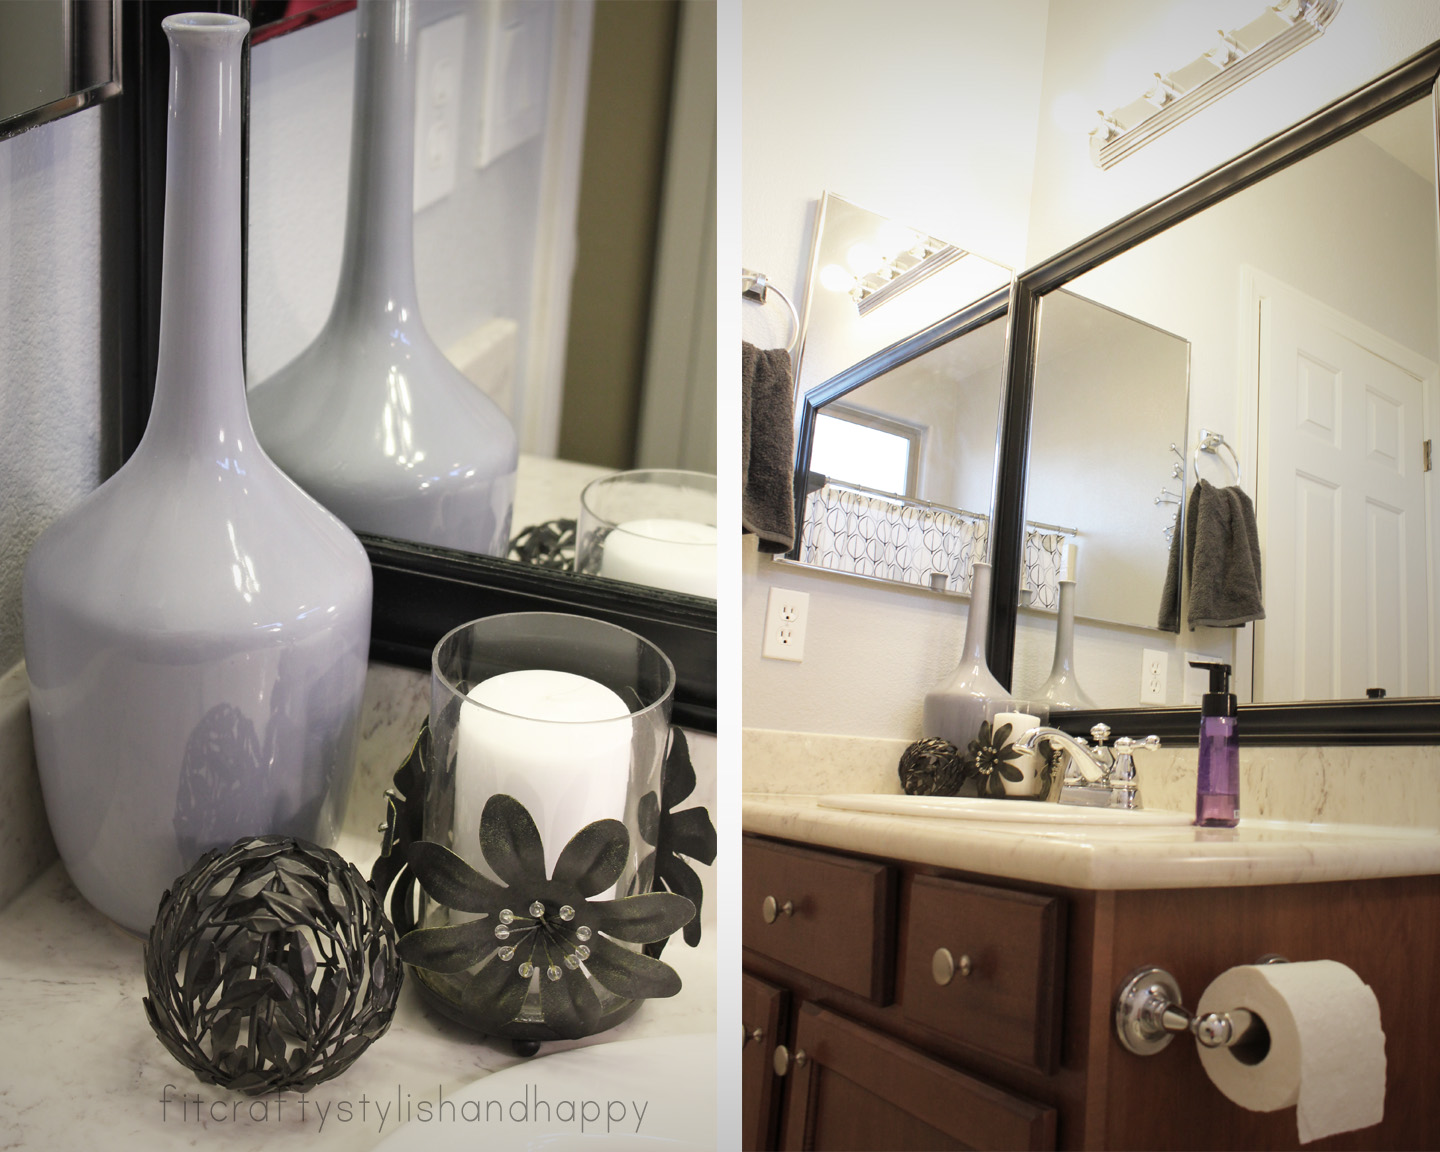 Fit crafty stylish and happy guest bathroom makeover for Grey bathroom decorating ideas